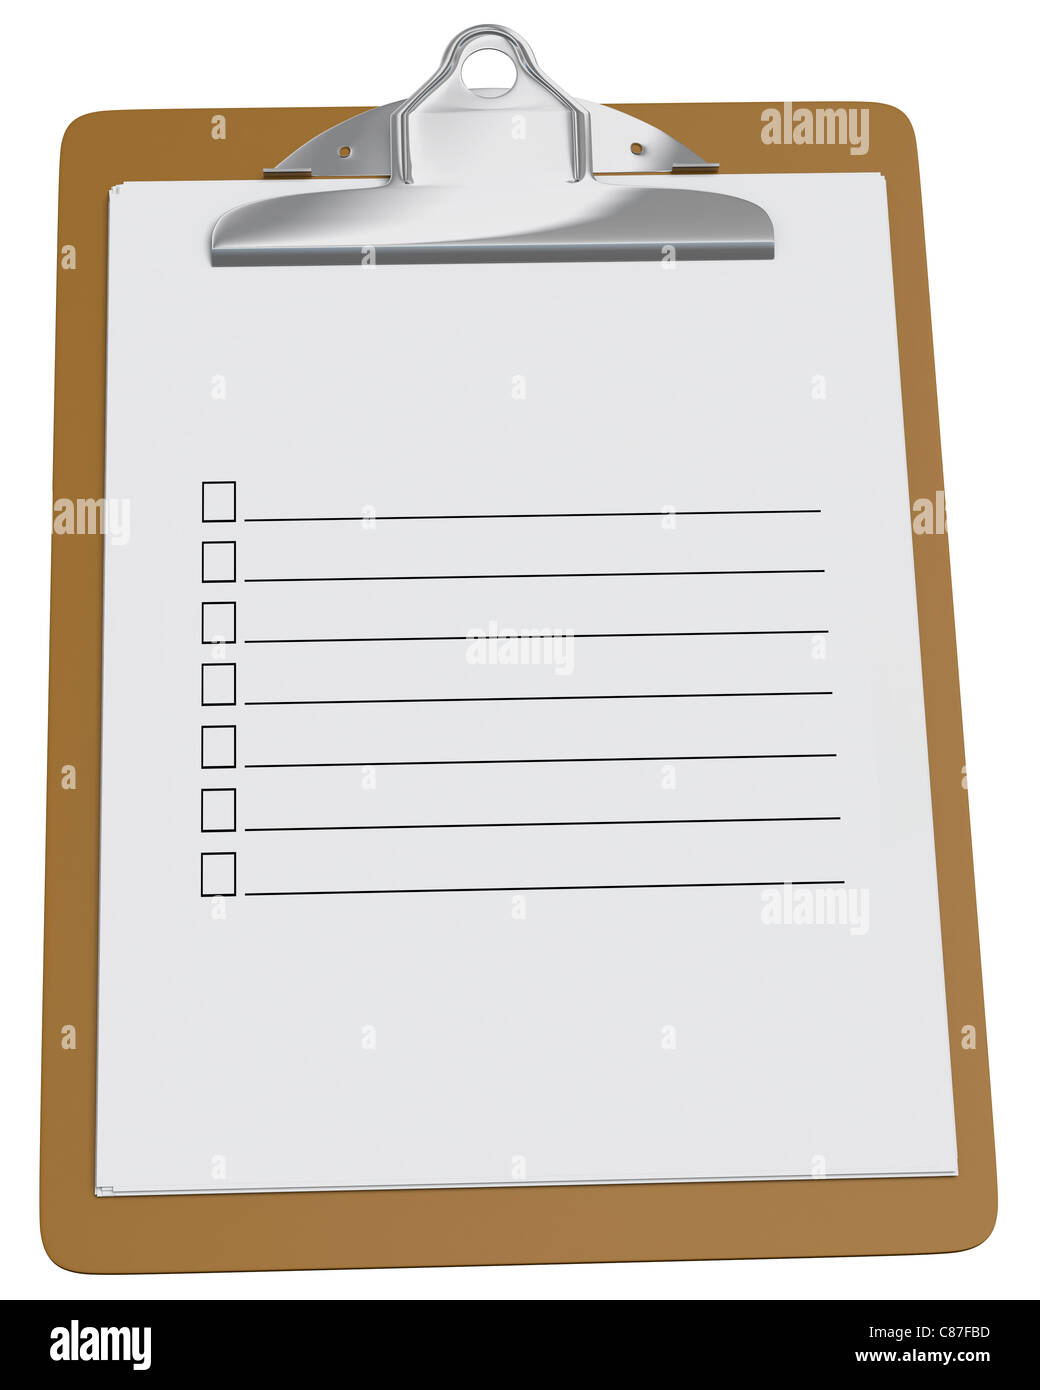 clipboard with blank checklist on a white background stock photo